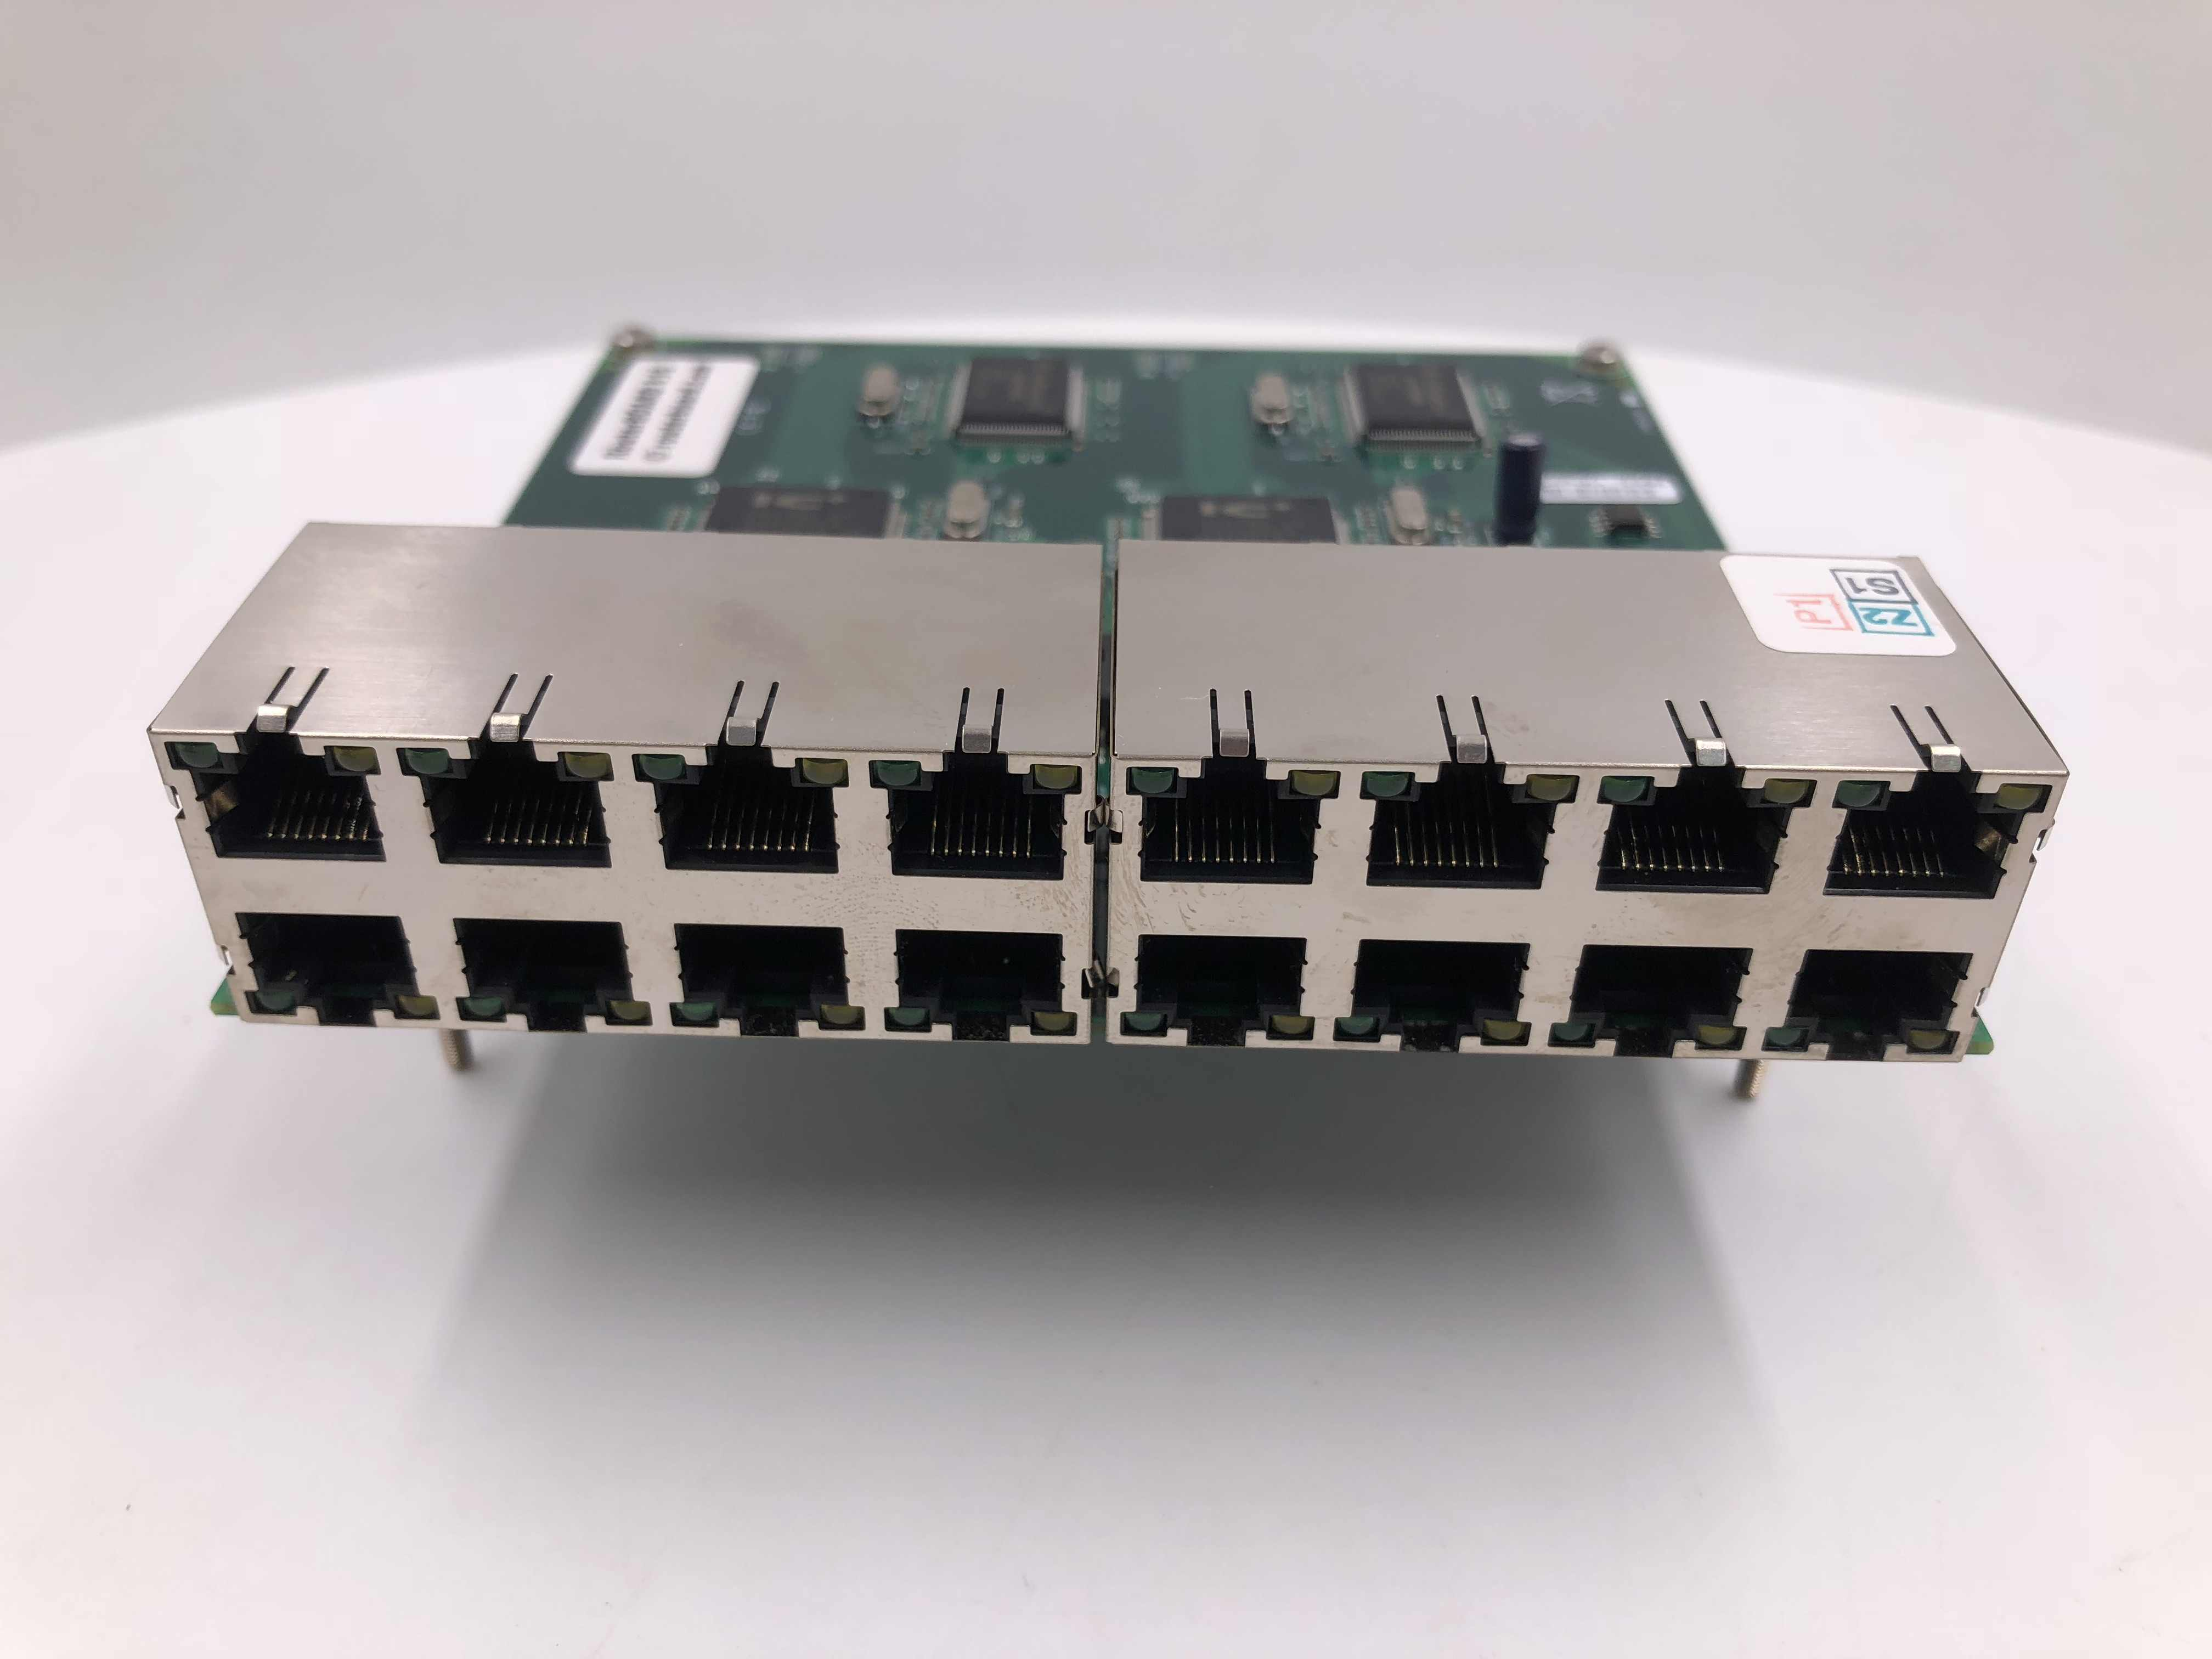 RB/816 RB816 Mikrotik RouterBoard 816 daughtercard adds 16 10/100 ethernet ports to RB/600 and RB/800